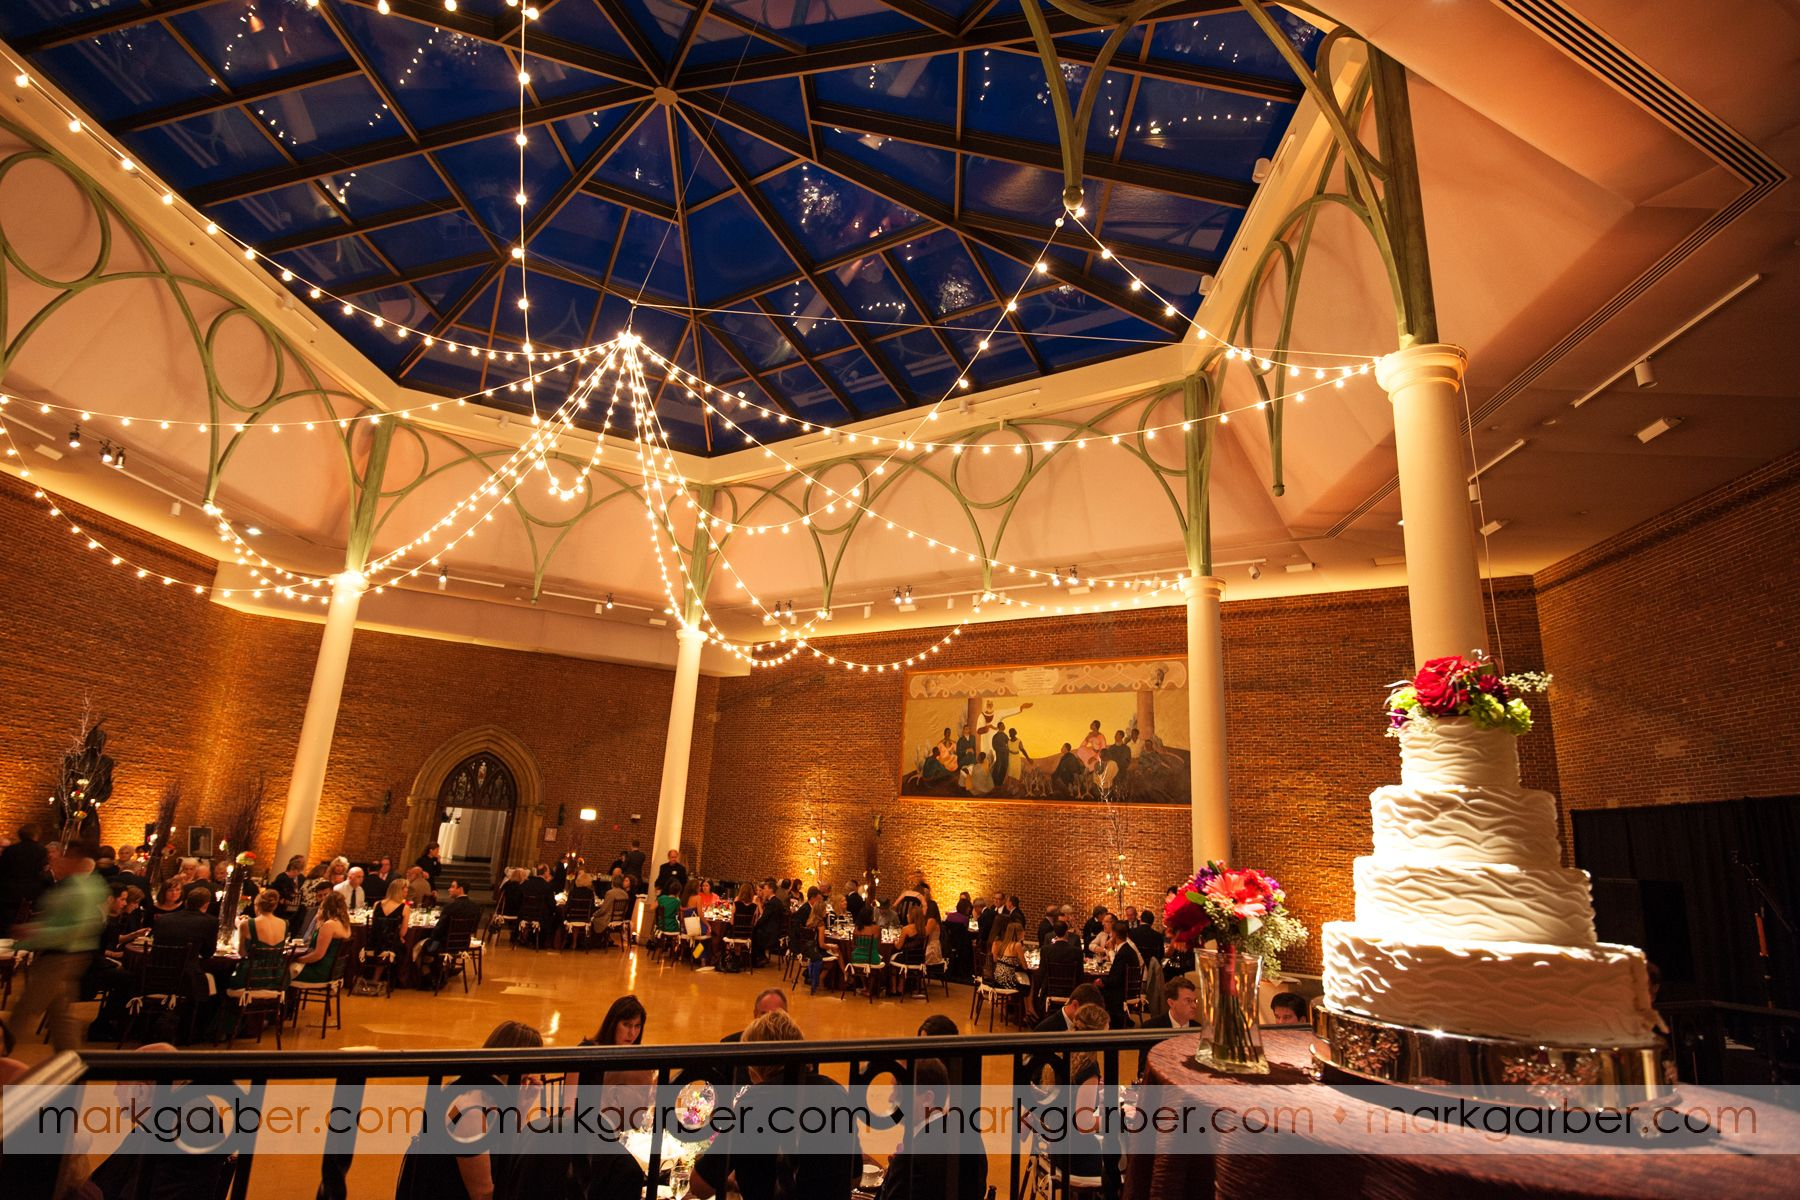 Dayton Art Insute Weddings Events Primetimepr Markgarberphotography